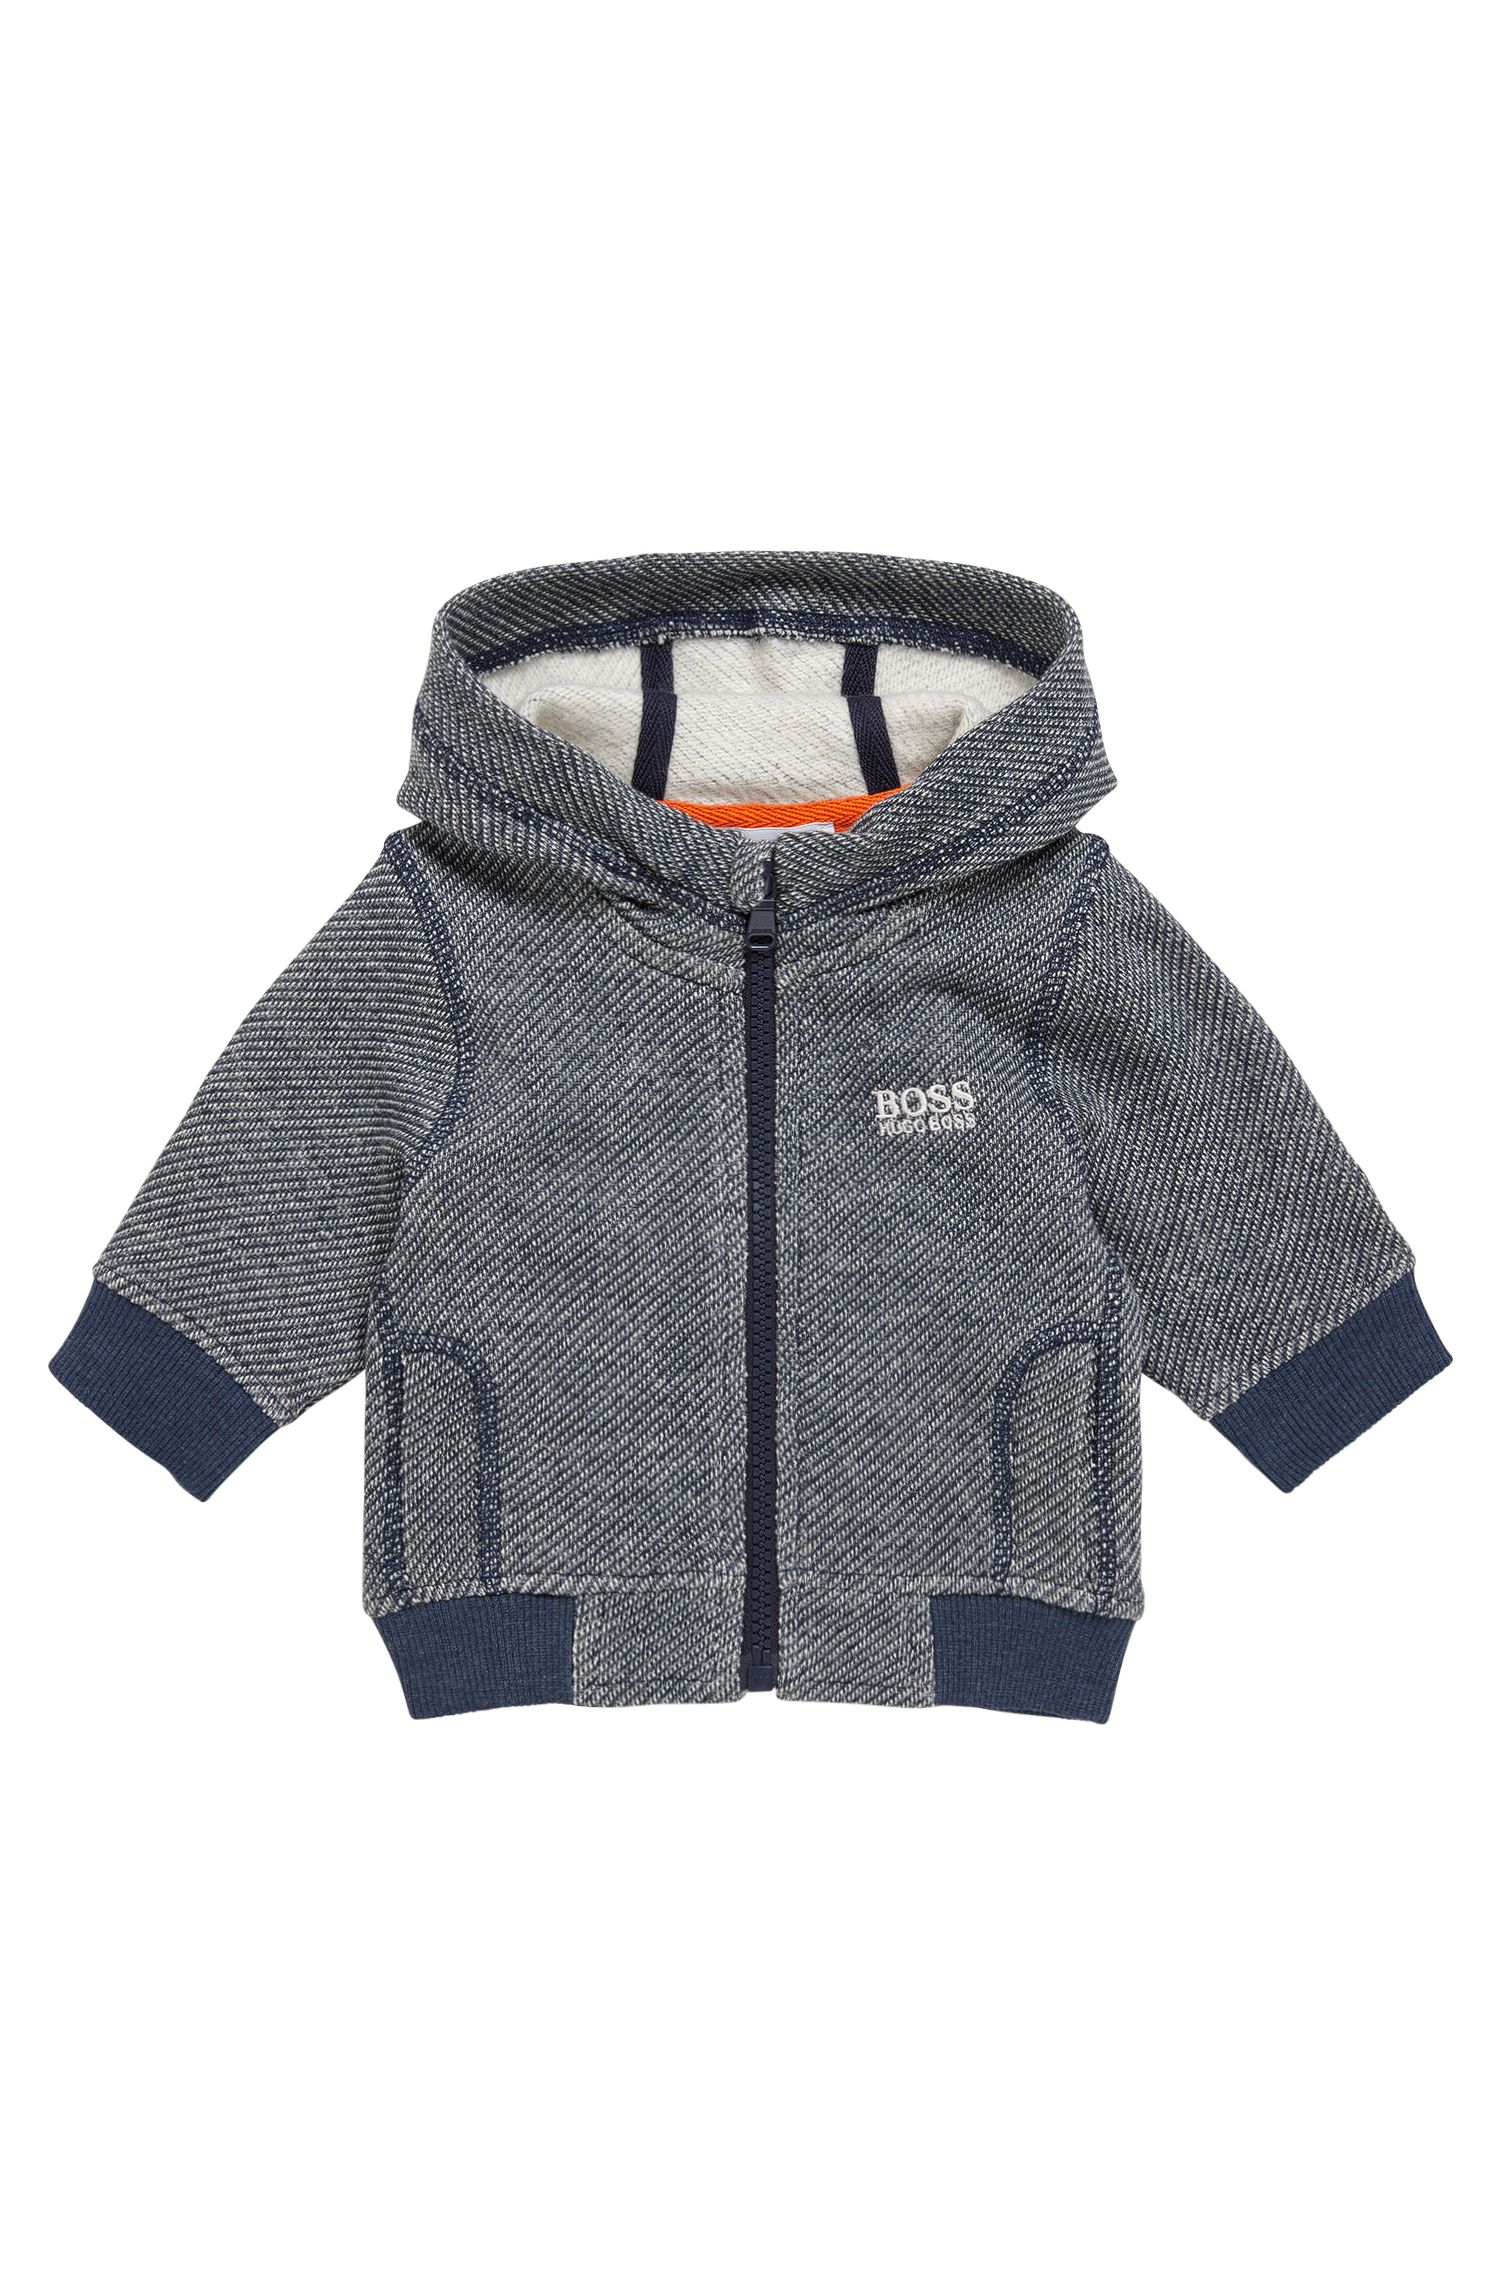 Patterned kids' sweat jacket in stretch cotton blend: 'J05519'